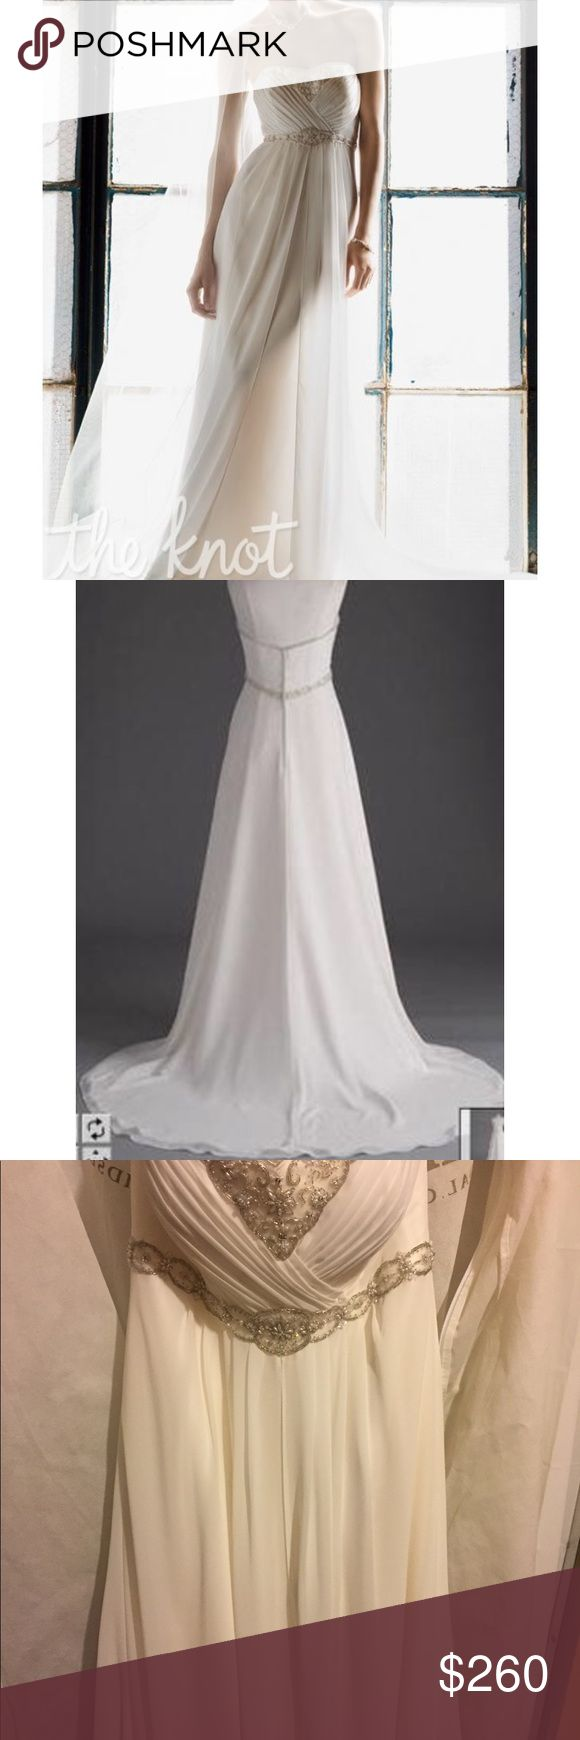 Galina Signature wedding gown Worn once. Missing a small amount of beading. Not noticeable. Dresses Wedding